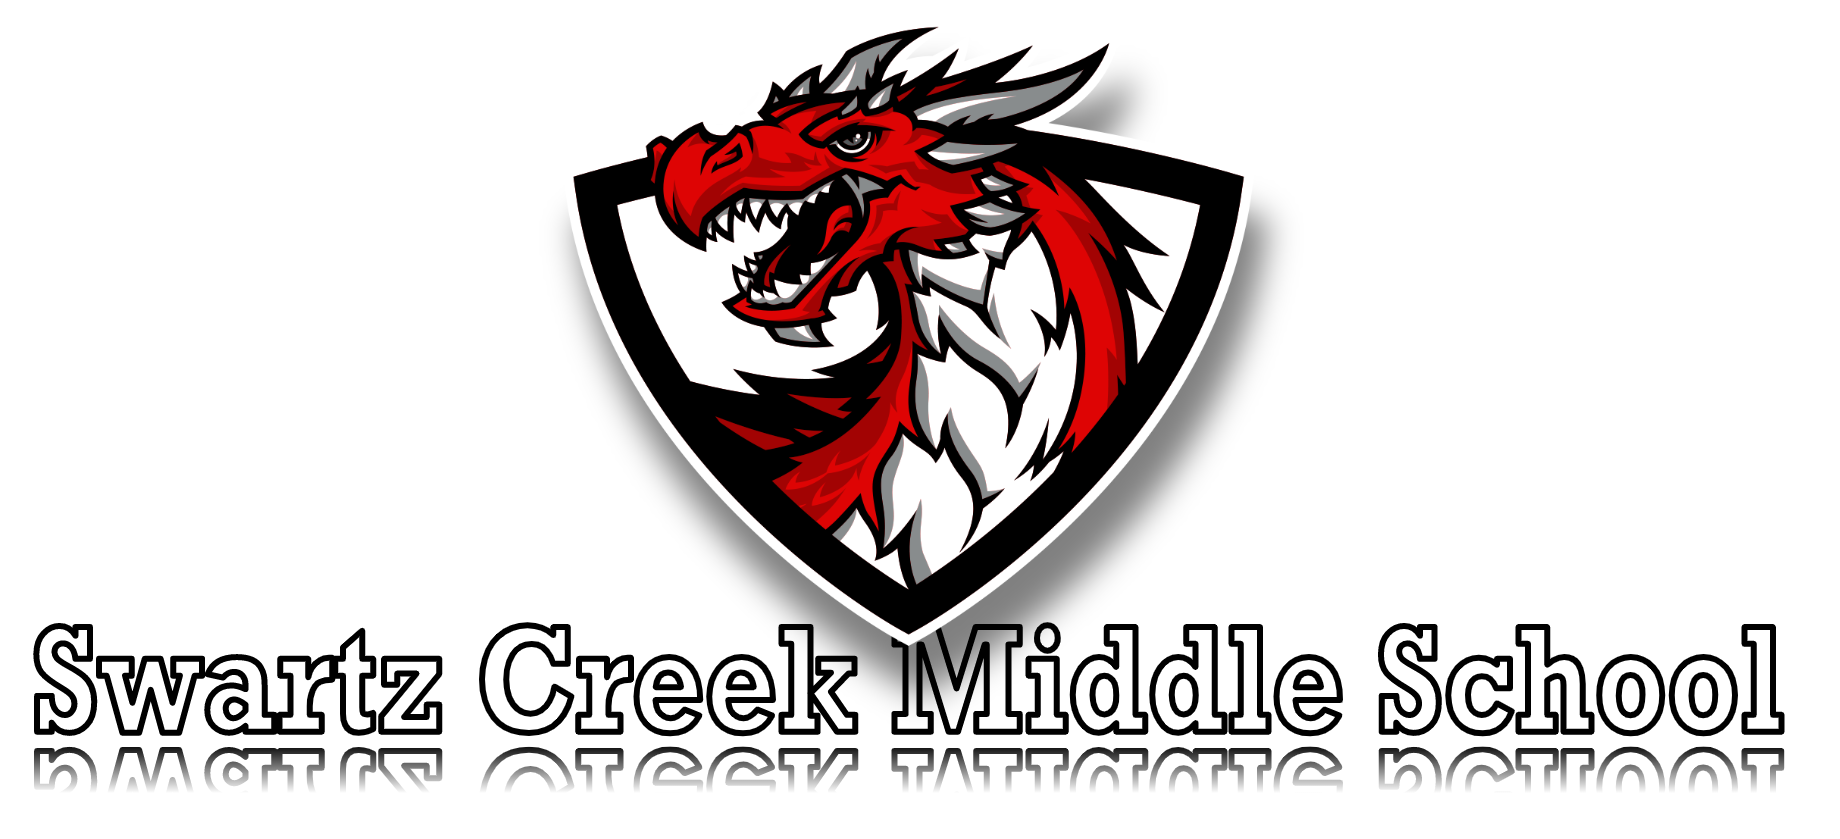 Dragon mascot with school title